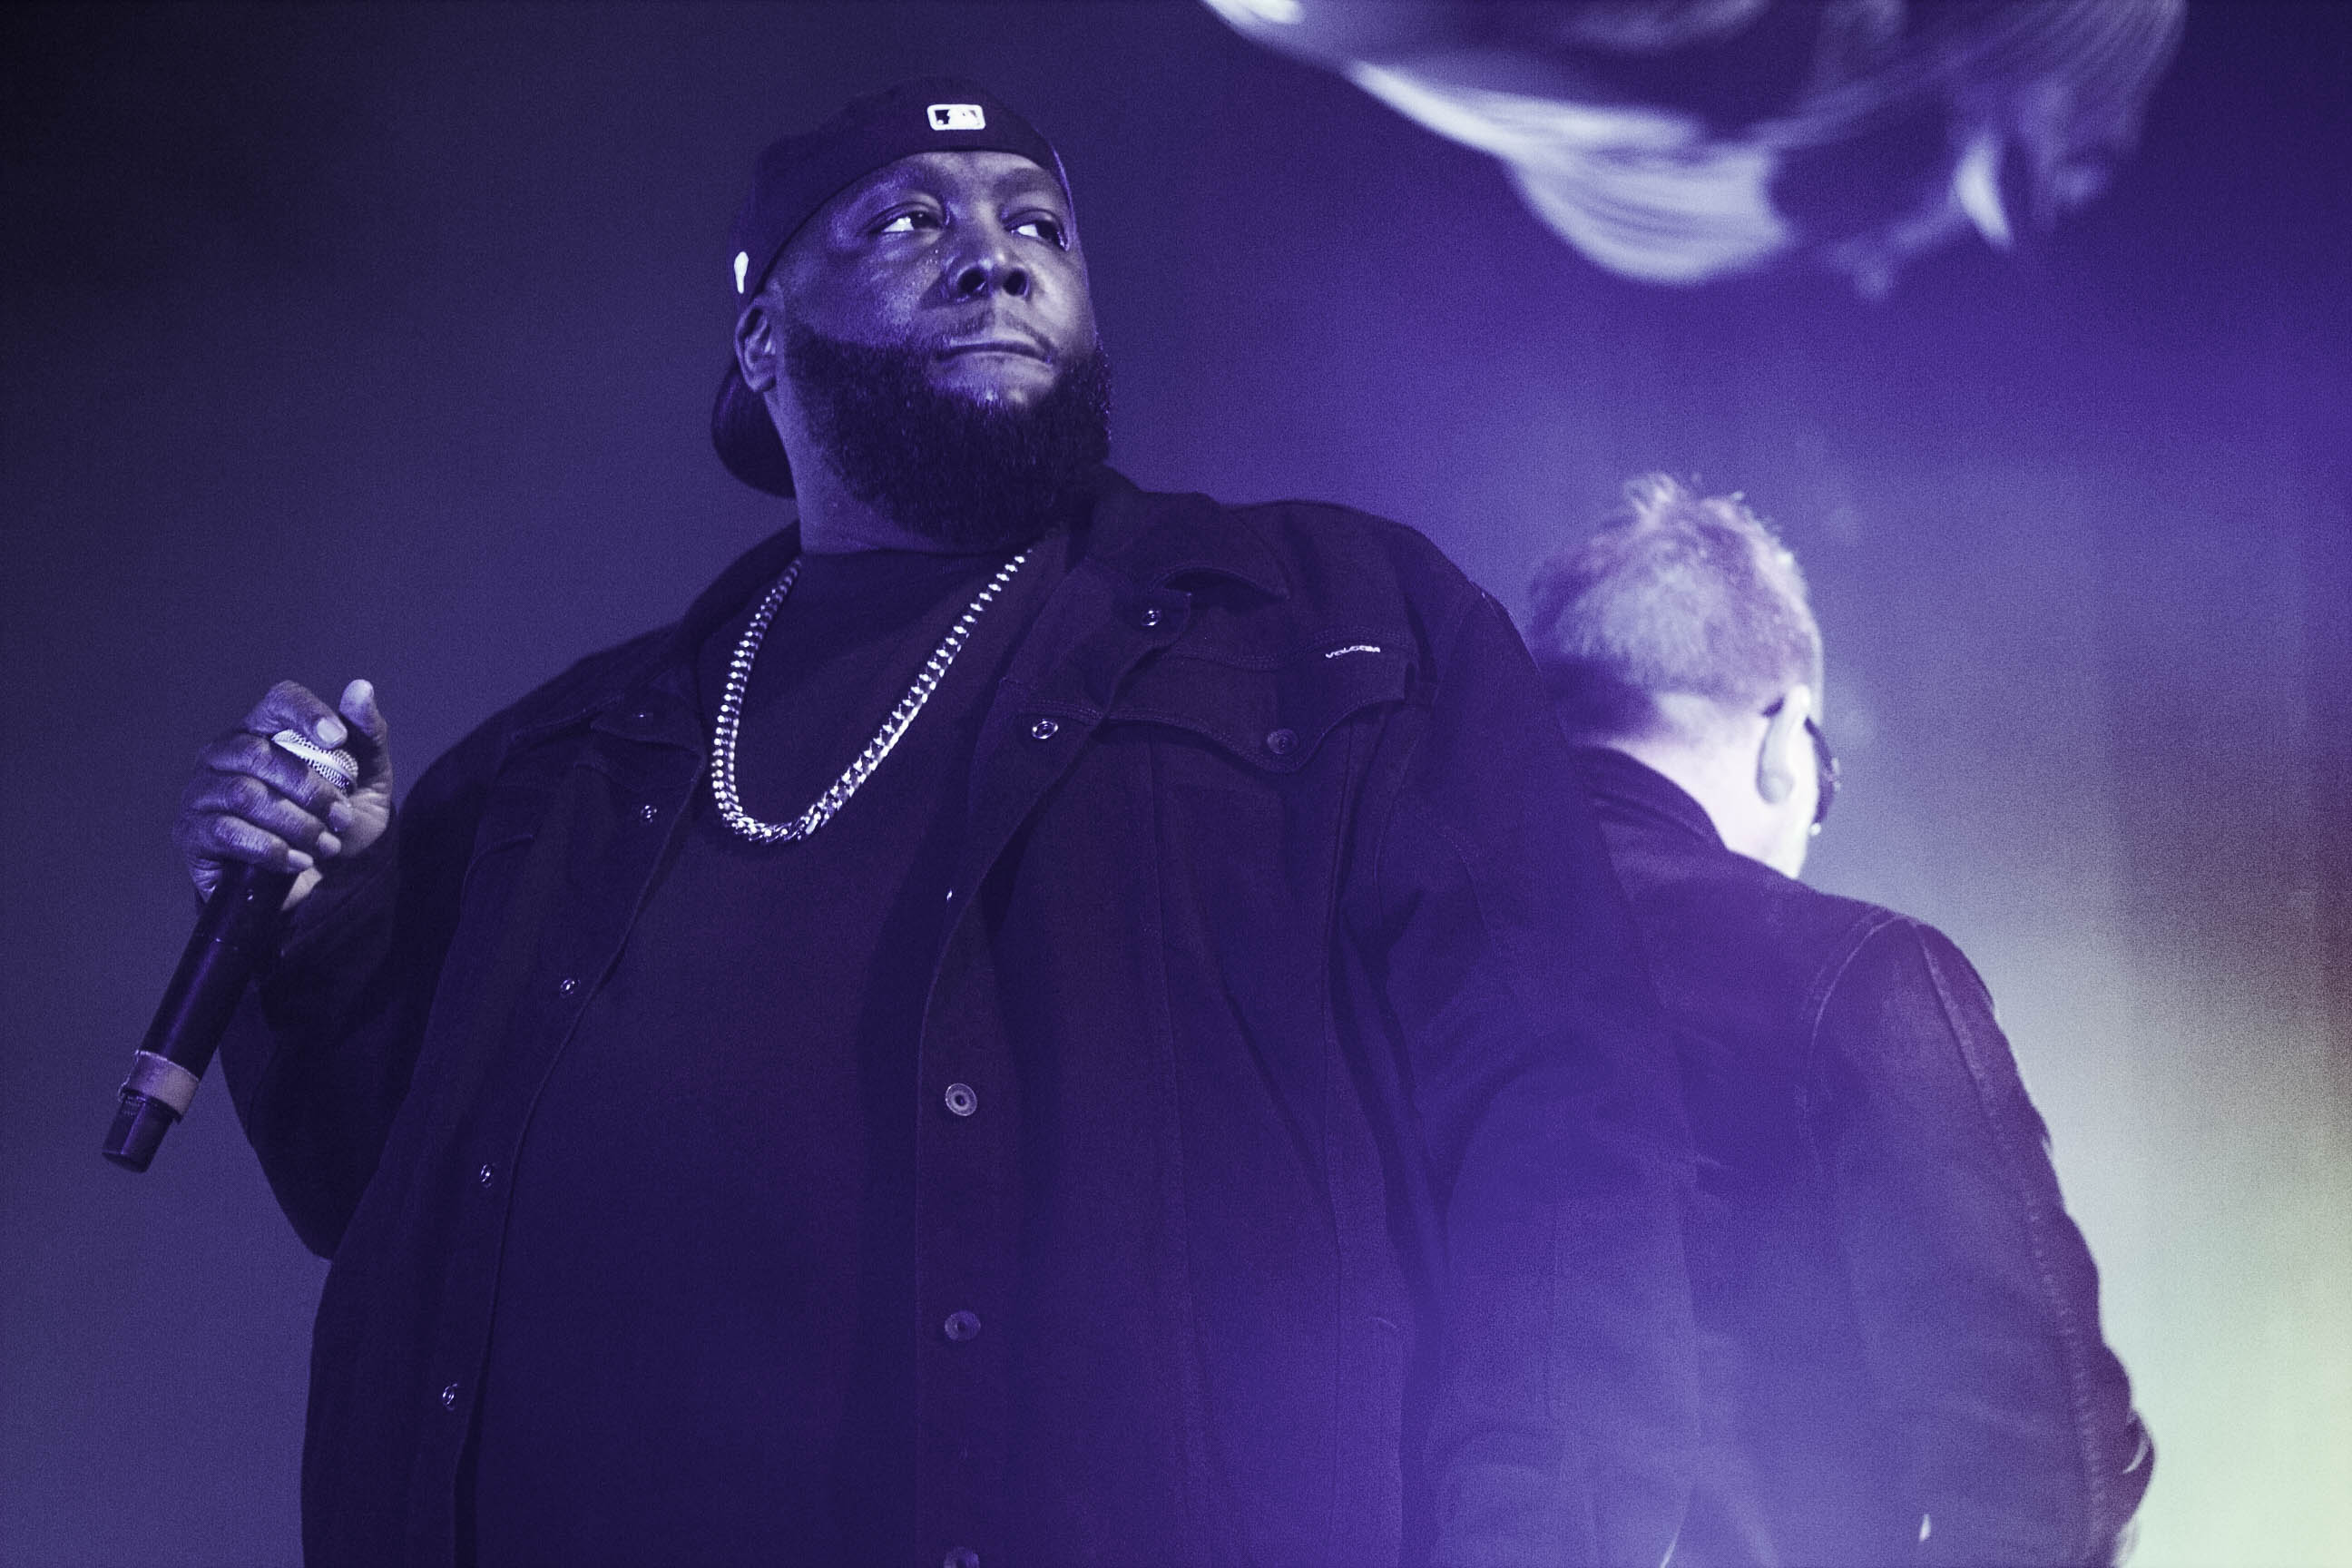 Run The Jewels @ Observatory North Park 1/30/17. Photo by Hector Vergara (@theHextron) for www.BlurredCulture.com.